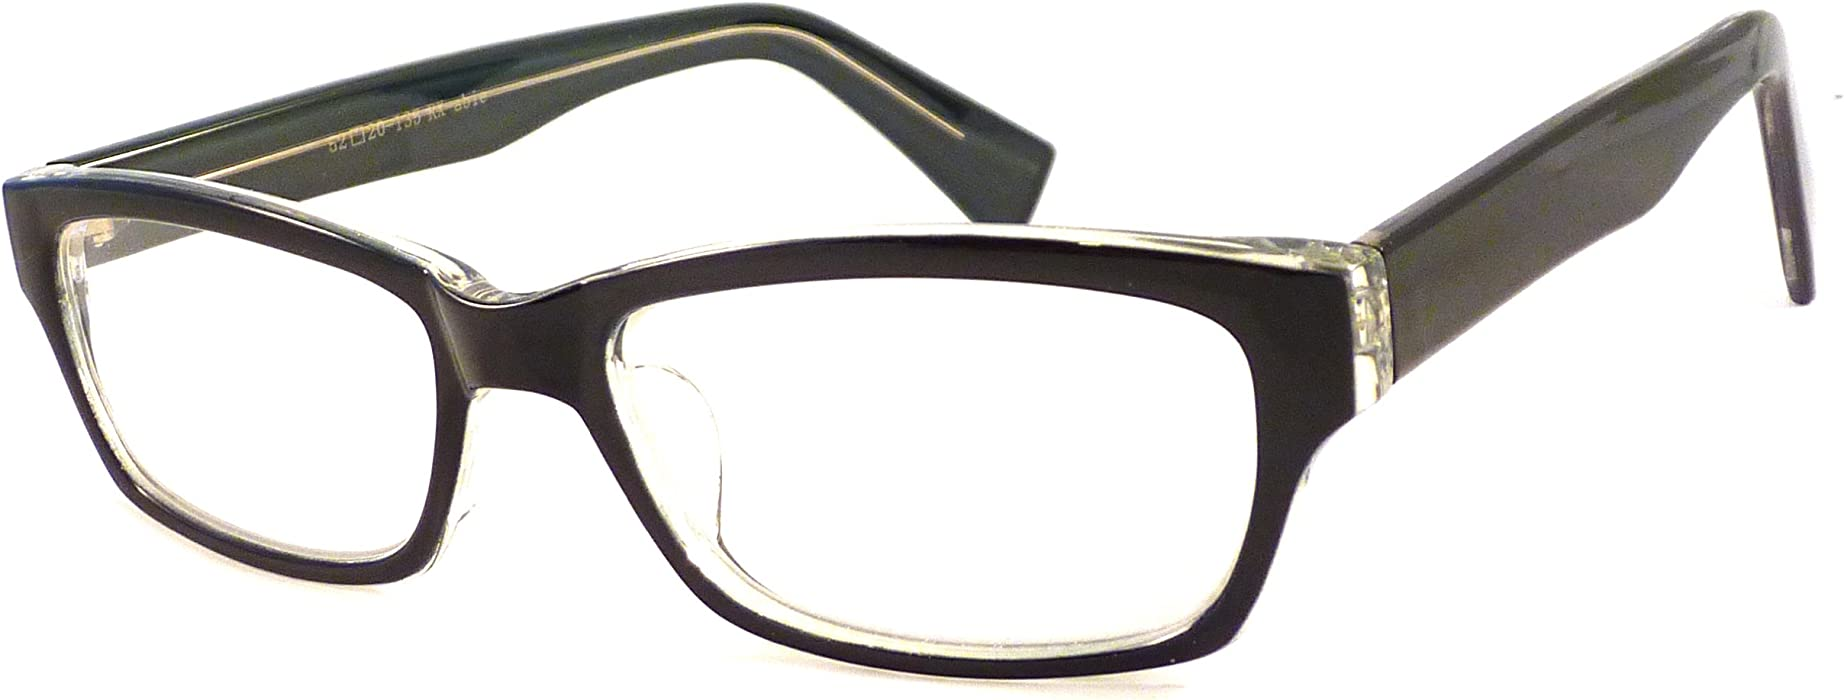 334e953883 Amazon.com  ITALO Designer Retro Thick Frame Rx-able Clear Lens Eye Glasses  GREEN CLEAR  Clothing